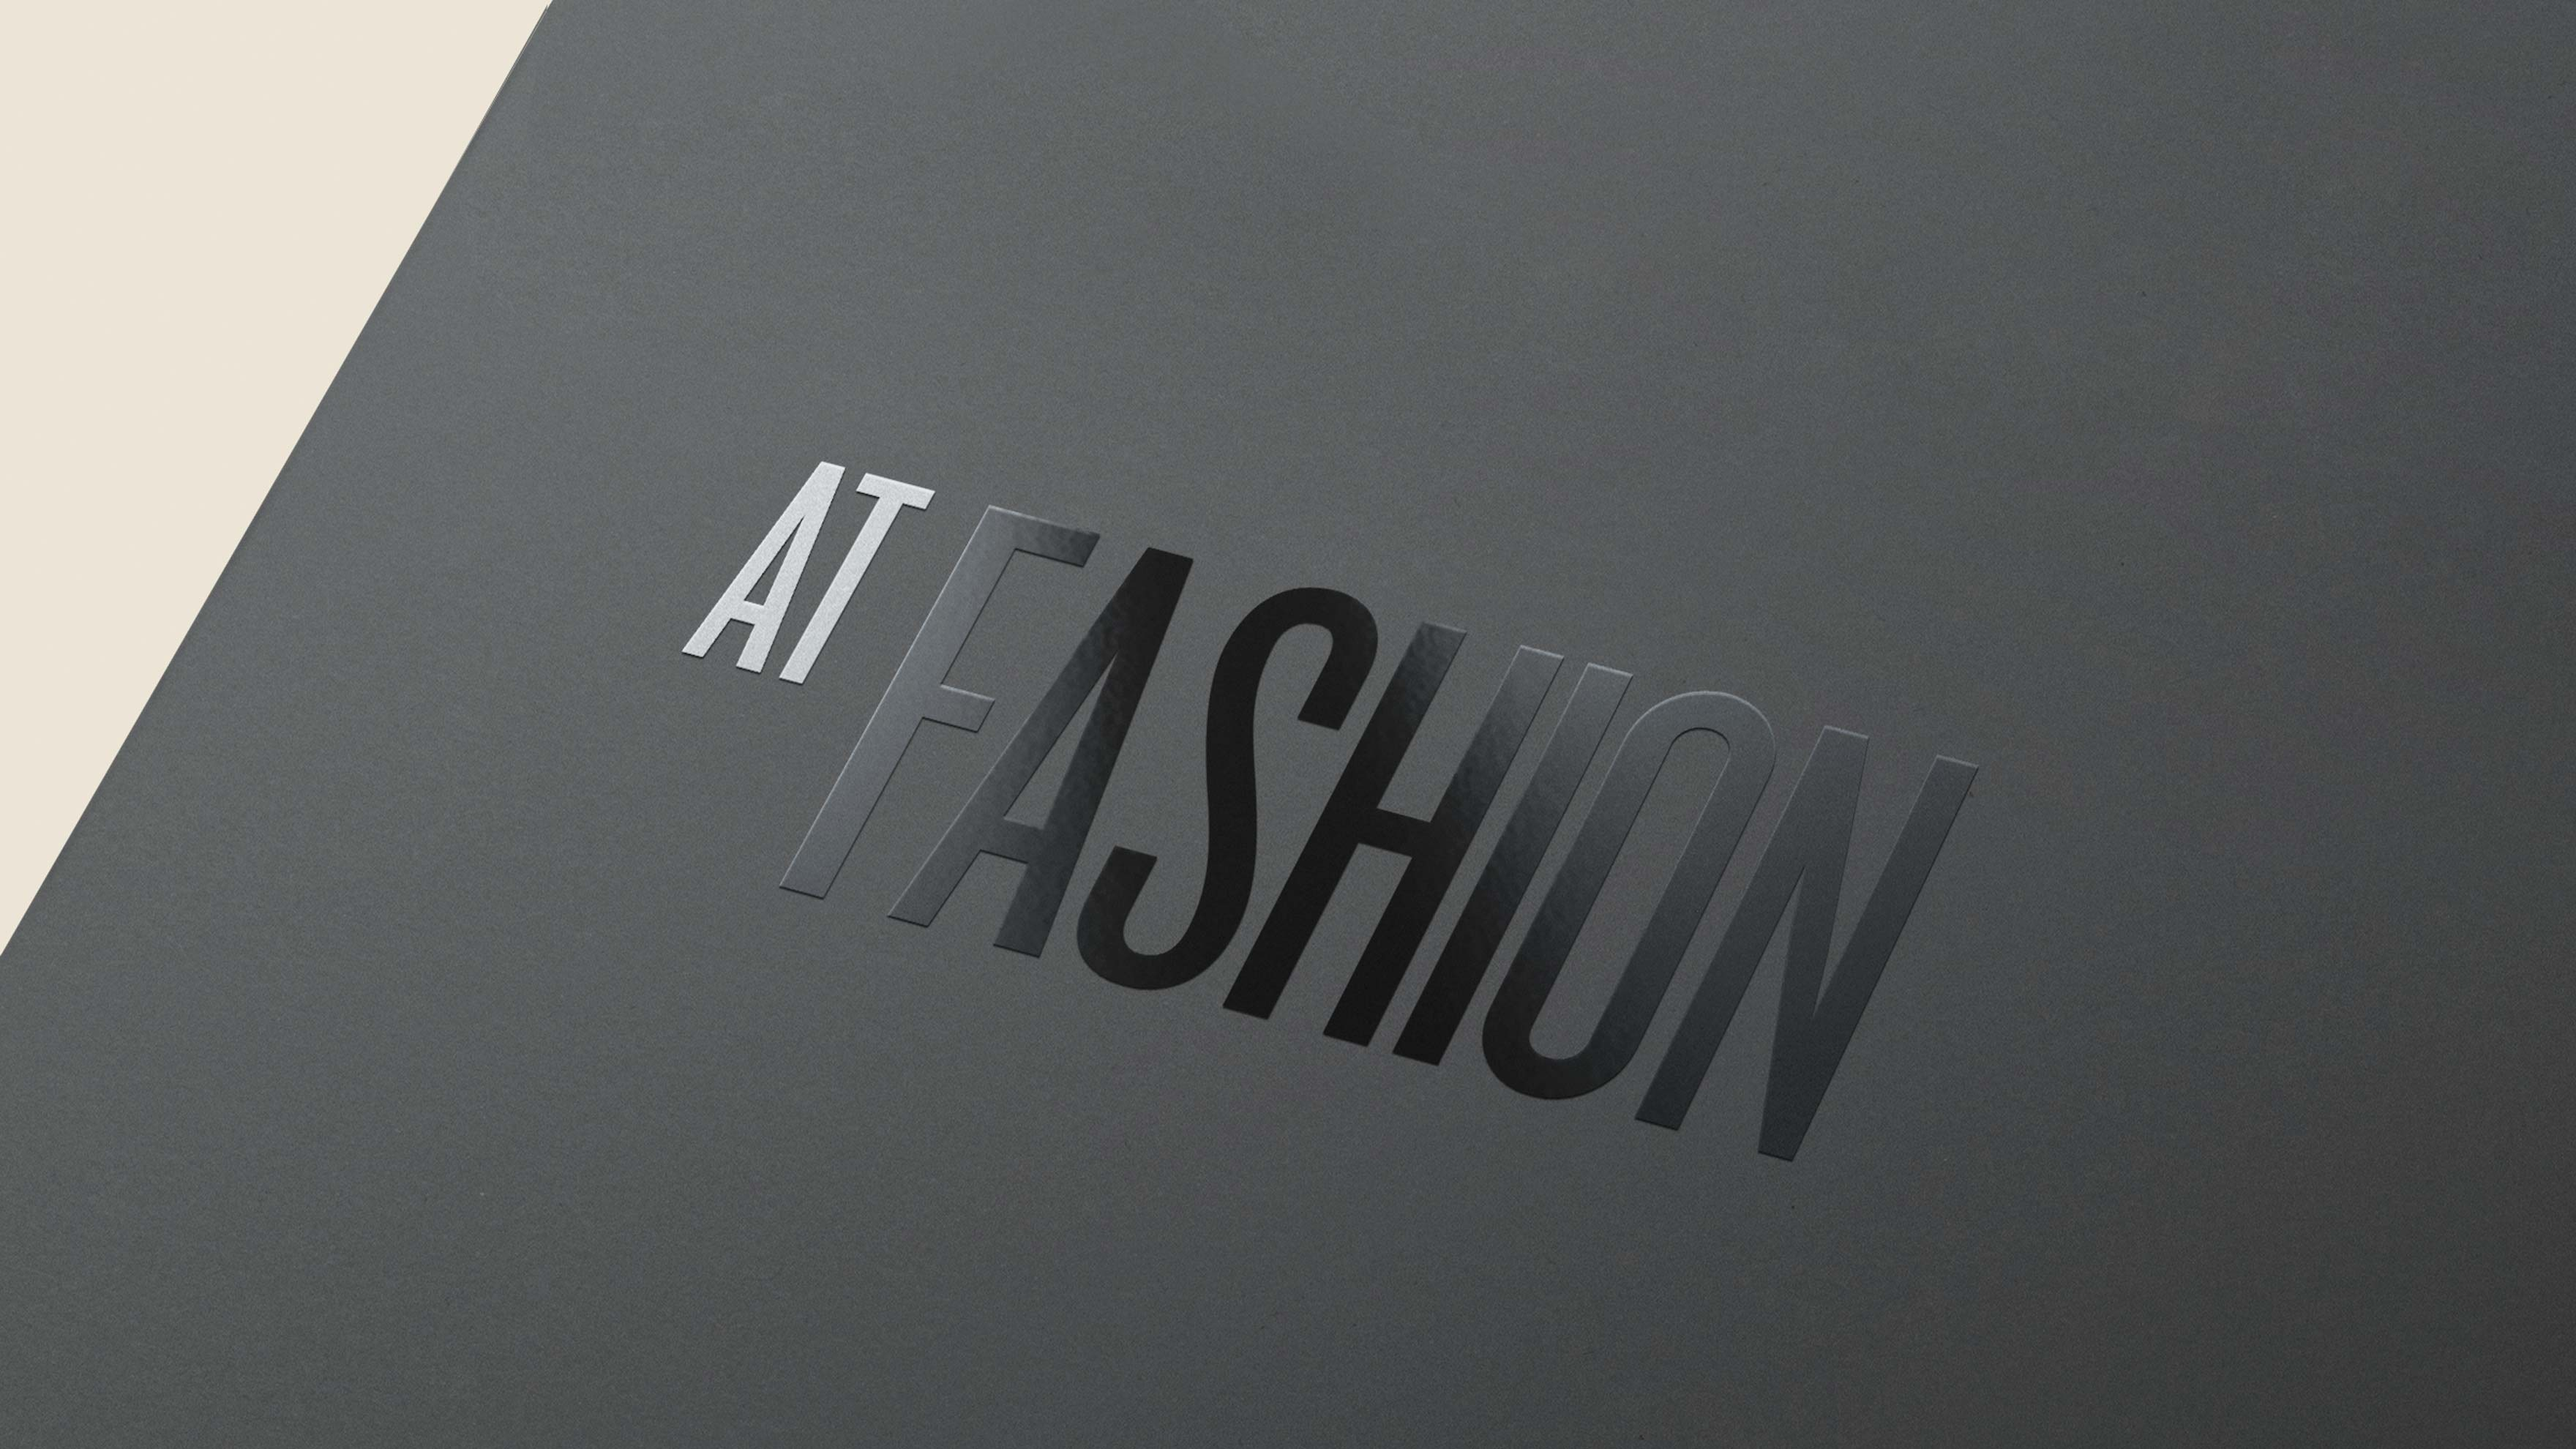 AT FASHION / CORPORATE IDENTITY / BRANDING